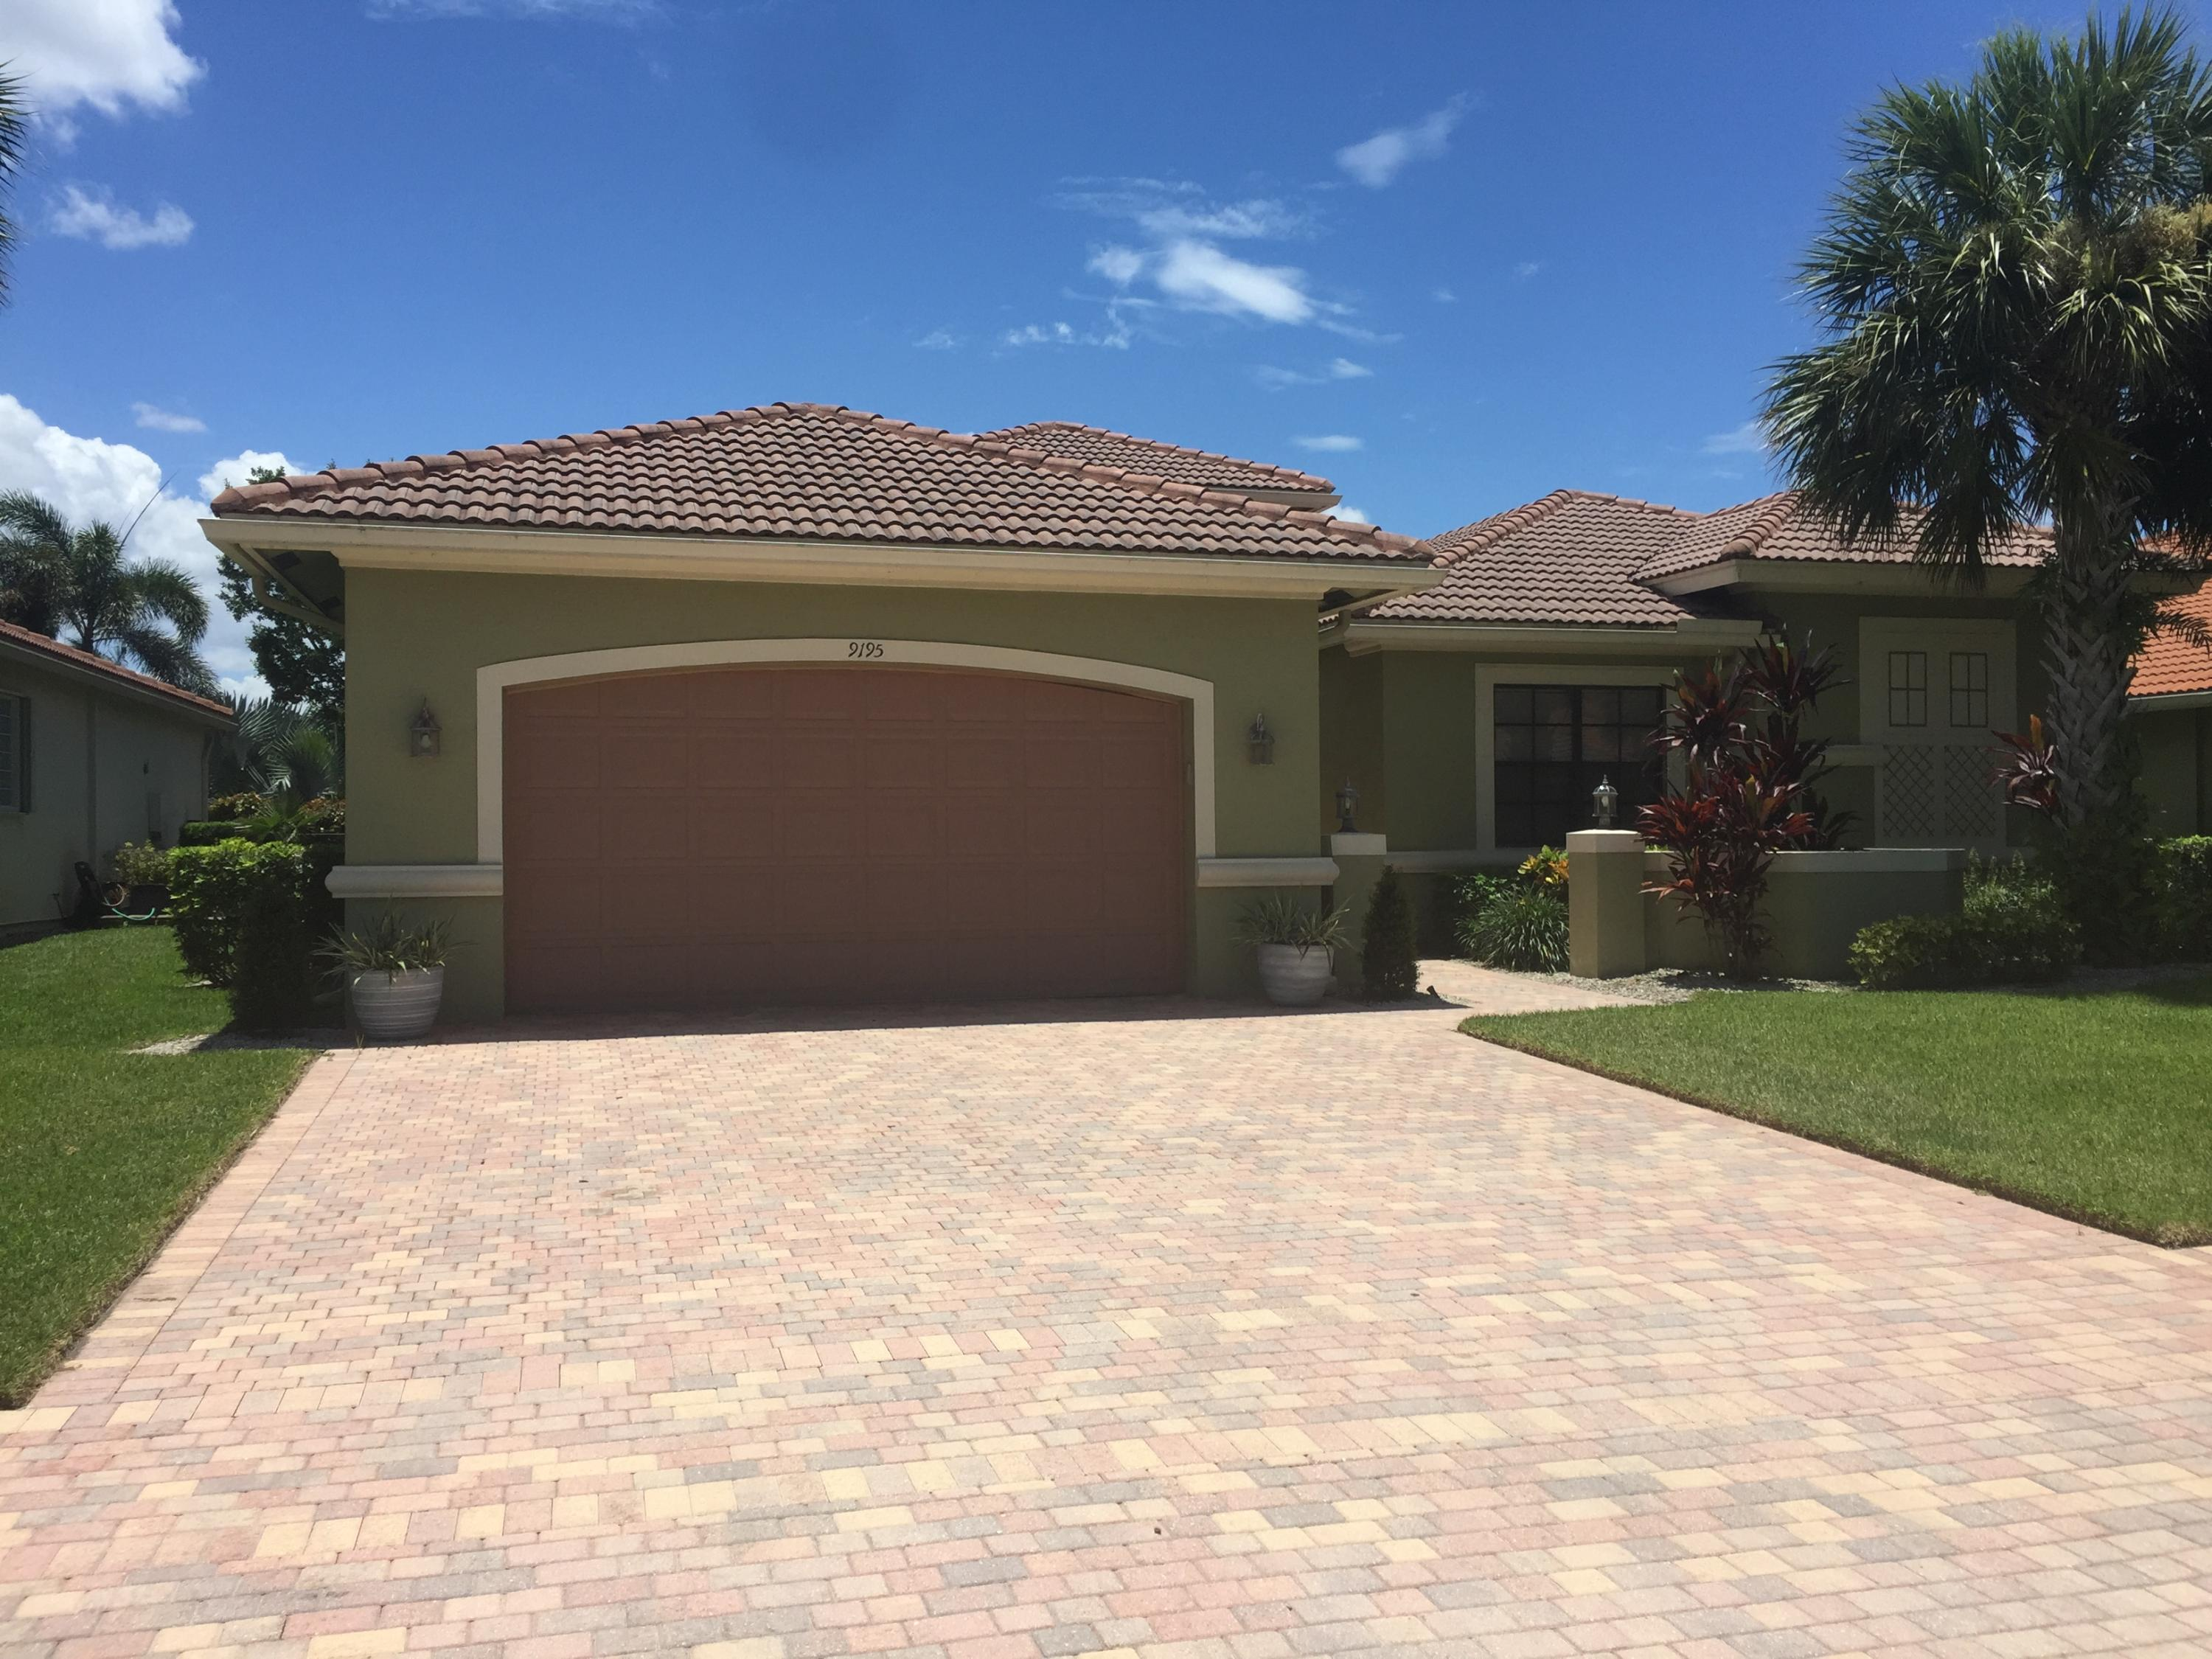 Photo of home for sale at 9195 Isles Cay Drive, Delray Beach FL